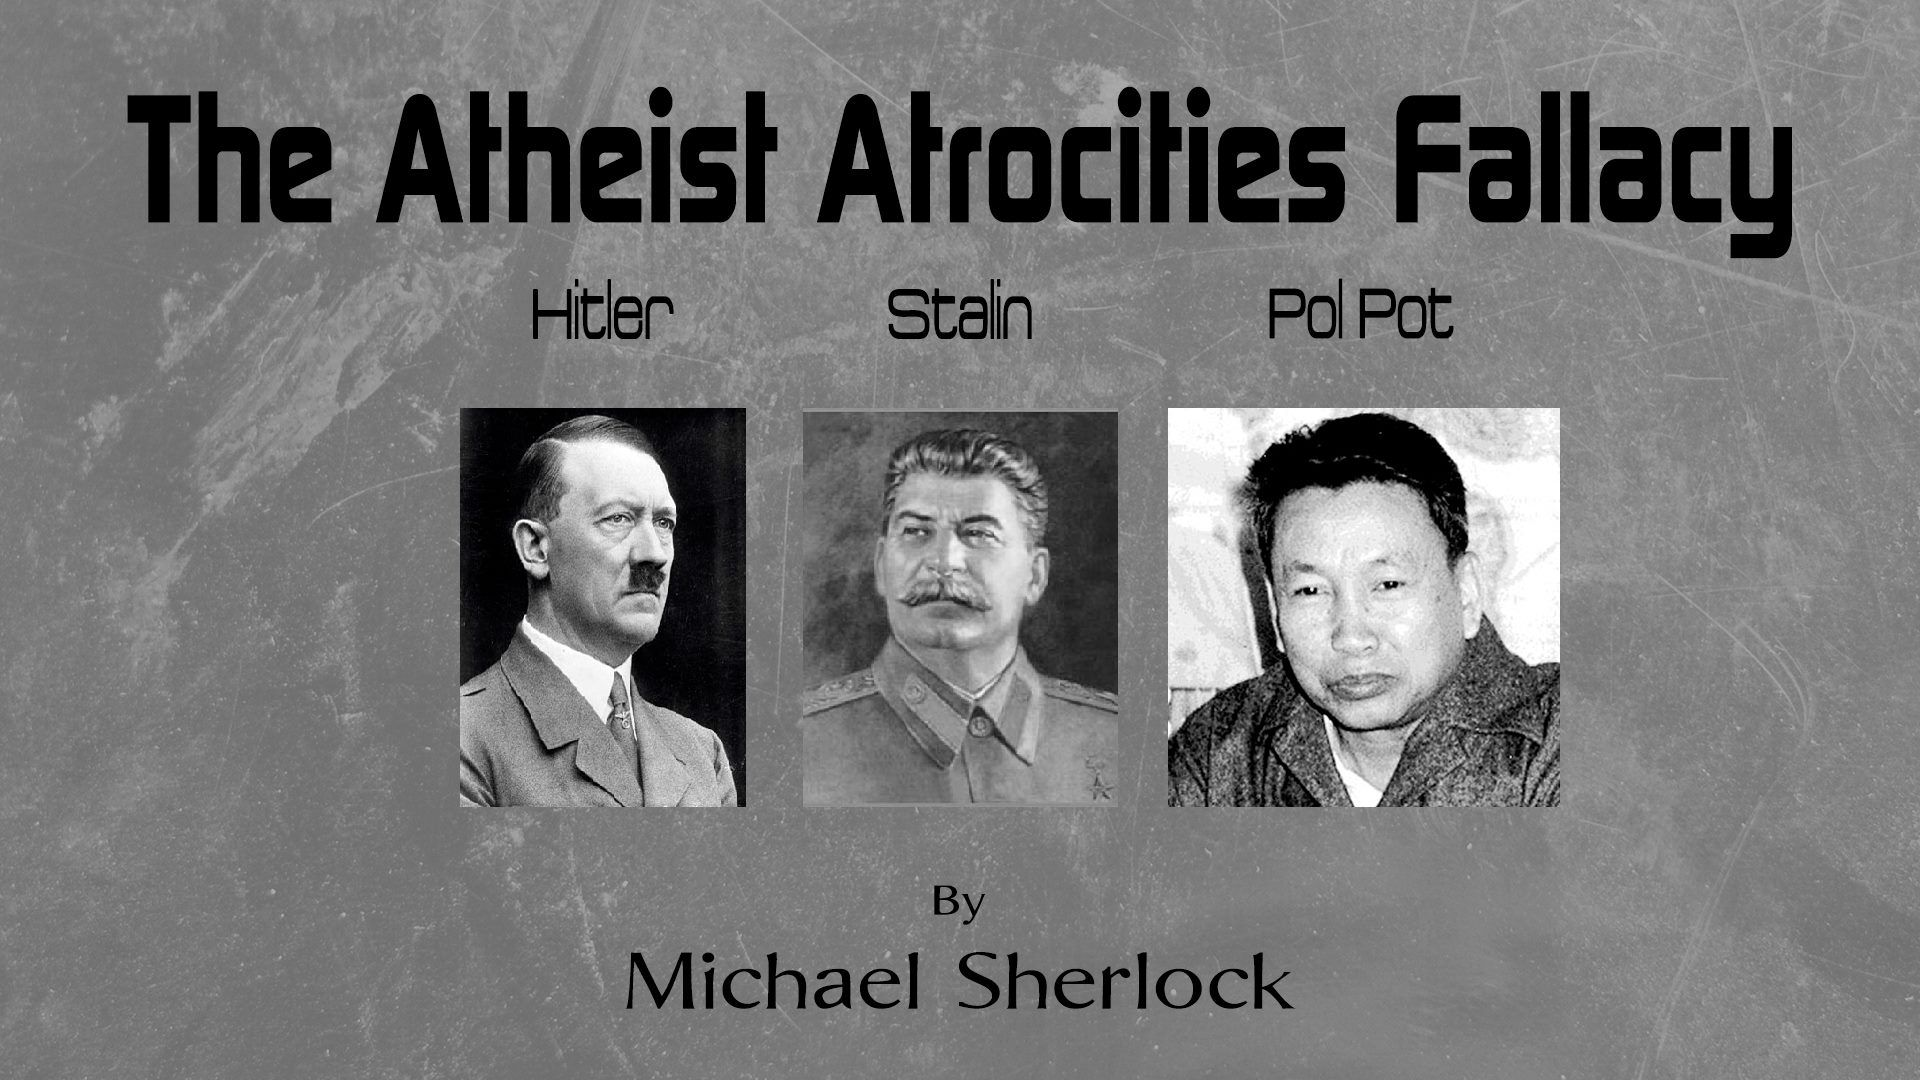 Pol Pot Quotes The Atheist Atrocities Fallacy  Hitler Stalin & Pol Pot  Religion